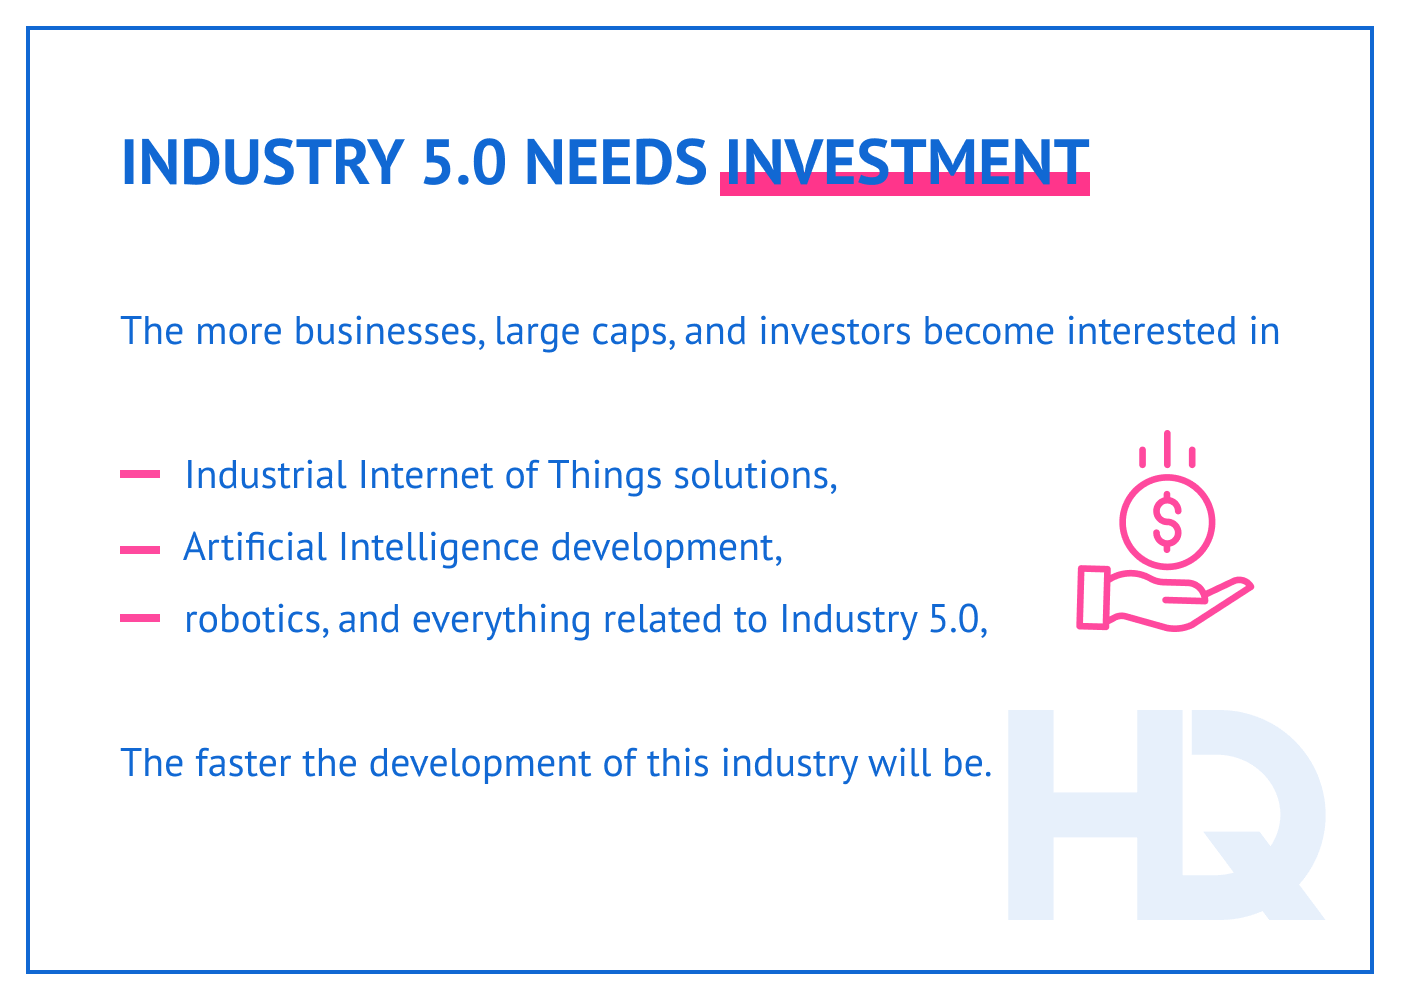 Importance of investment for Industry 5.0 development.